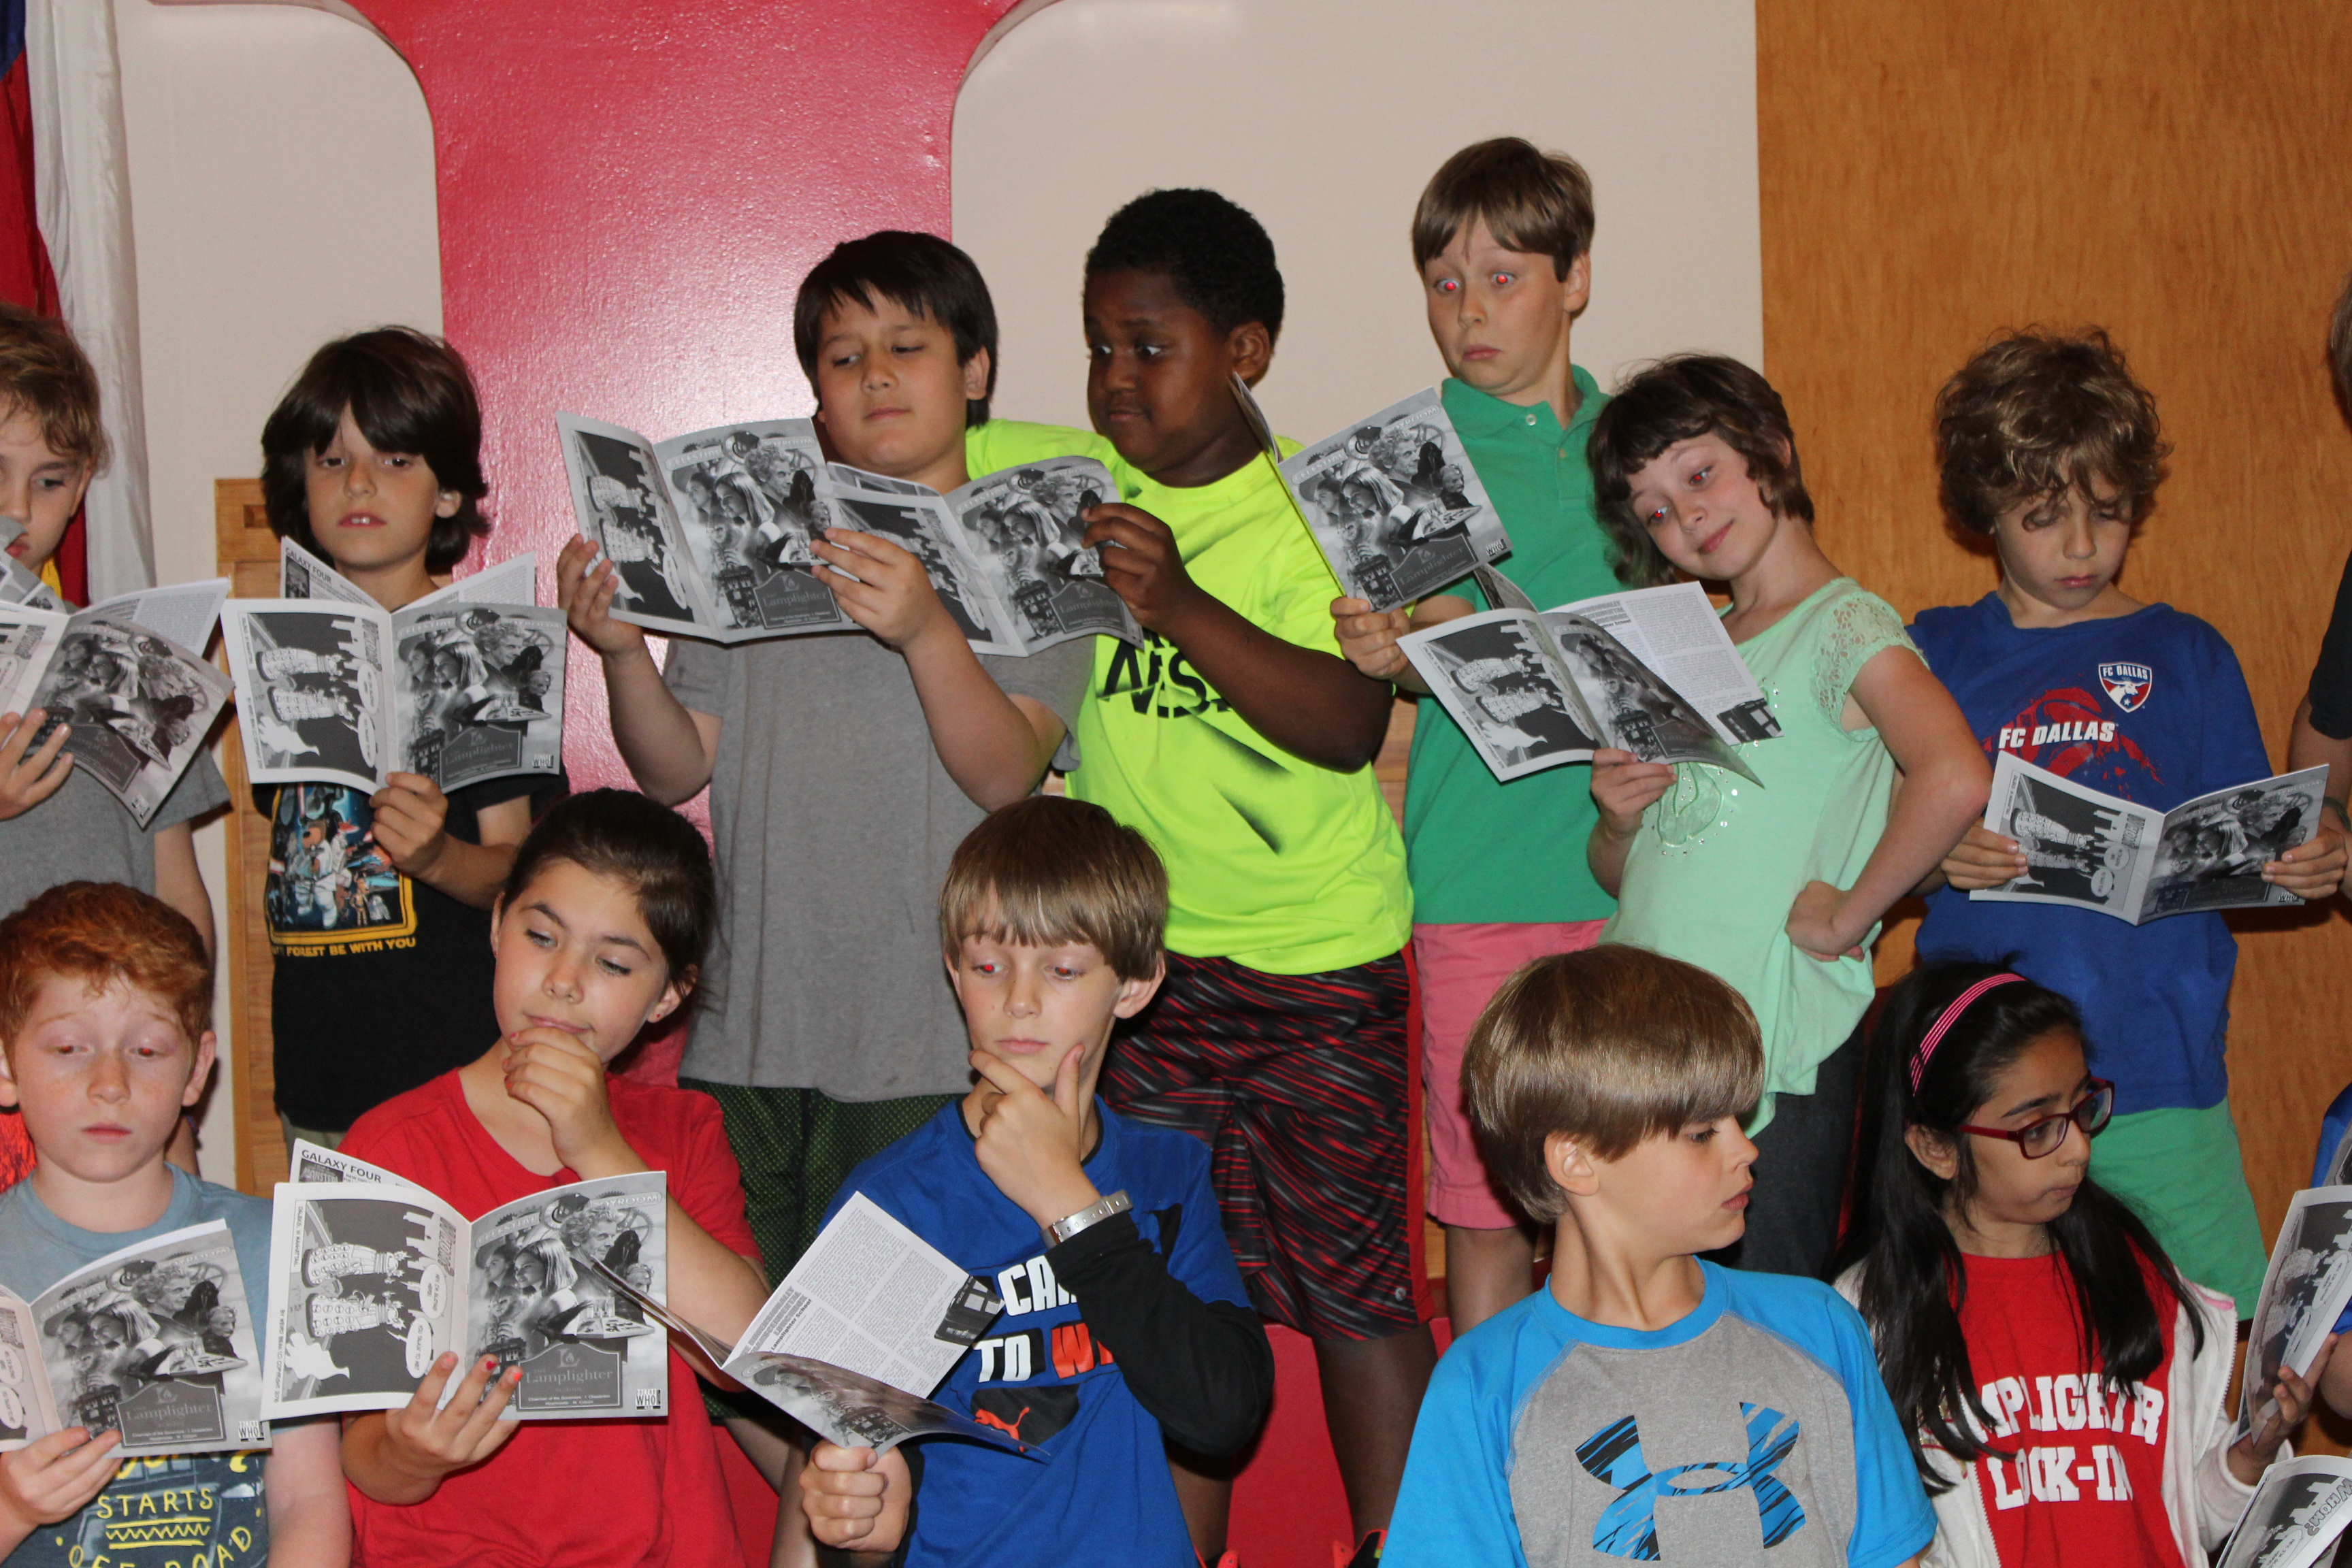 """Members of the """"Who Is Doctor Who"""" fan club at the Lamplighter School check out their cover story in Celestial Times magazine, official publication of the Doctor Who Appreciation Society. (Photo from Lamplighter School)"""